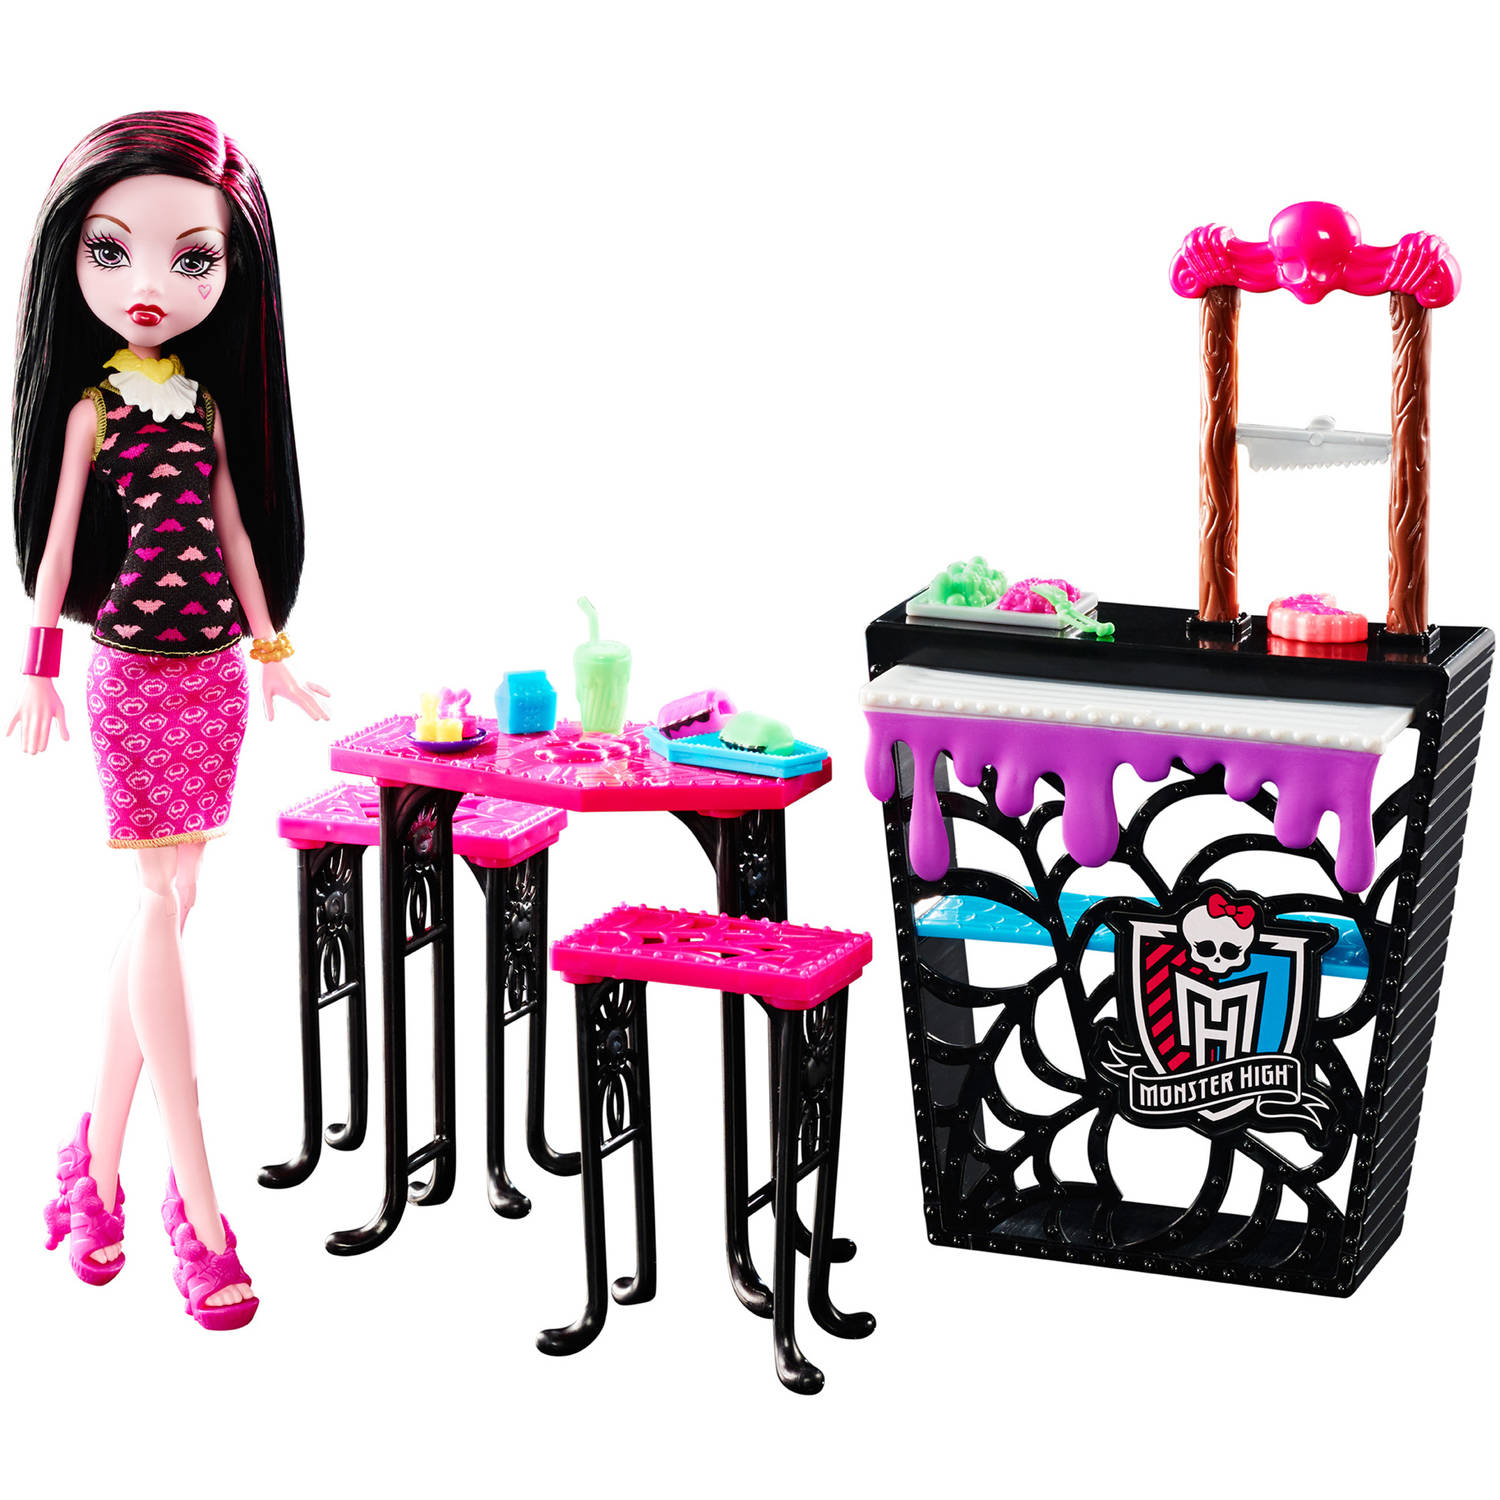 Monster High Beast Bites Caf Draculaura Doll Playset